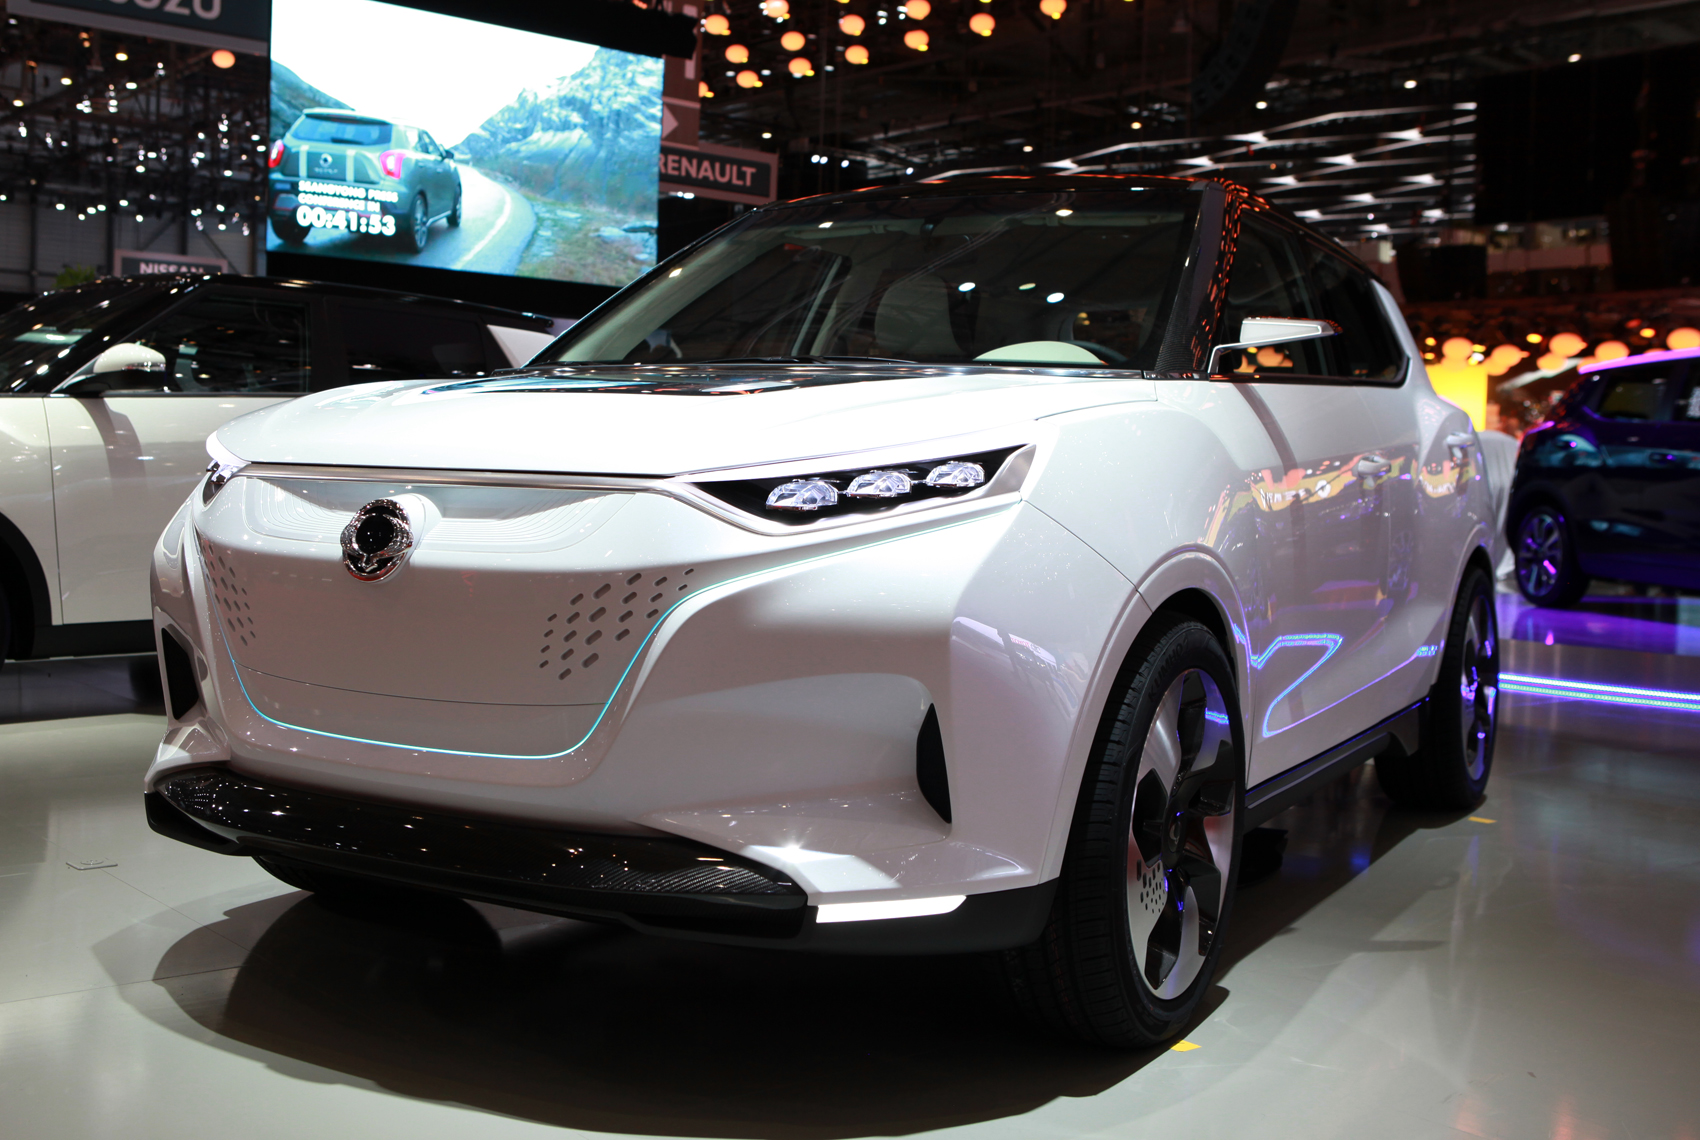 Ssangyong S Environmentally Friendly Tivoli Evr Concept Suv